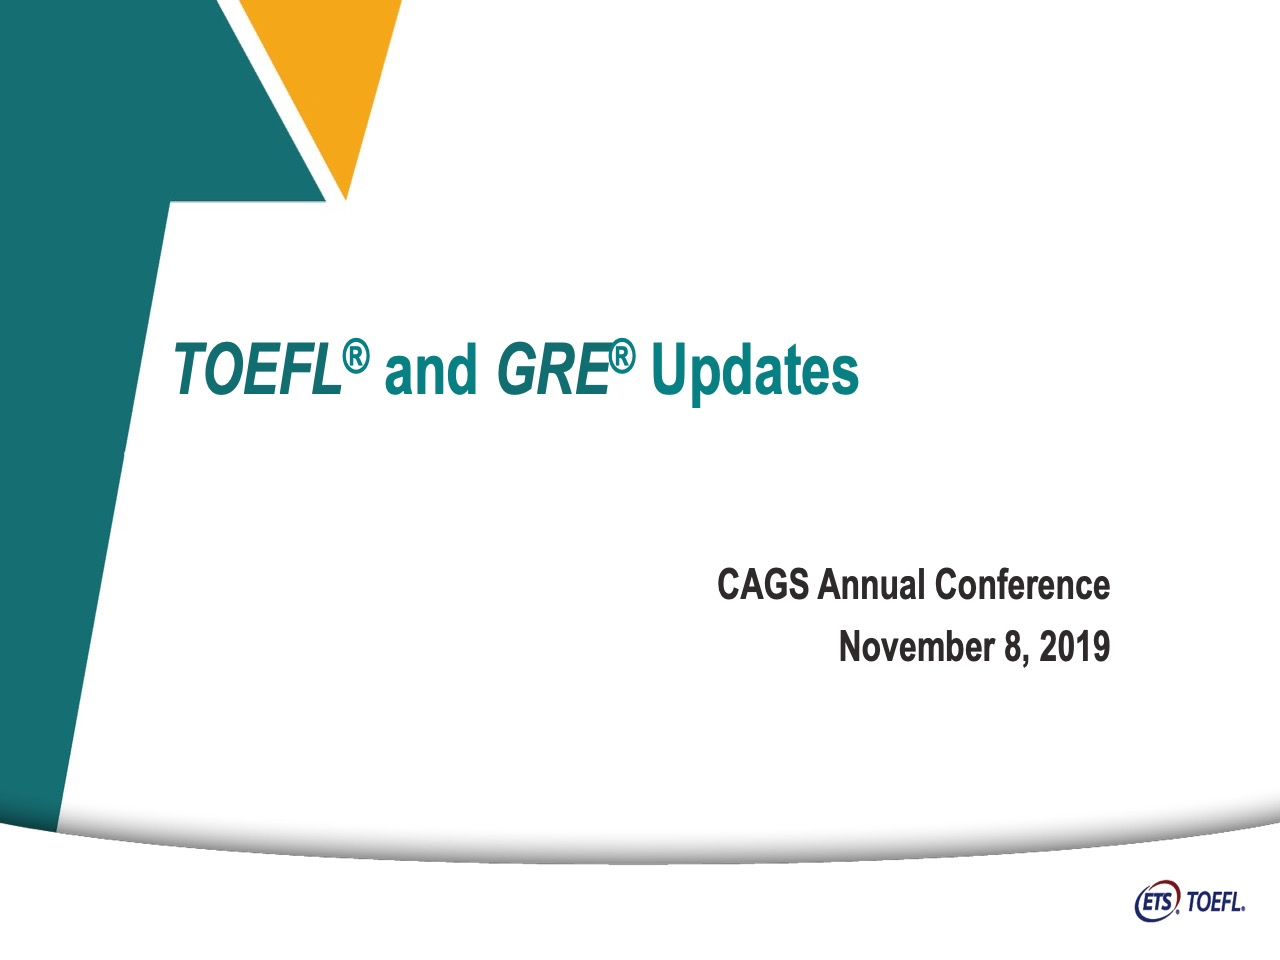 TOEFL® and GRE® Updates